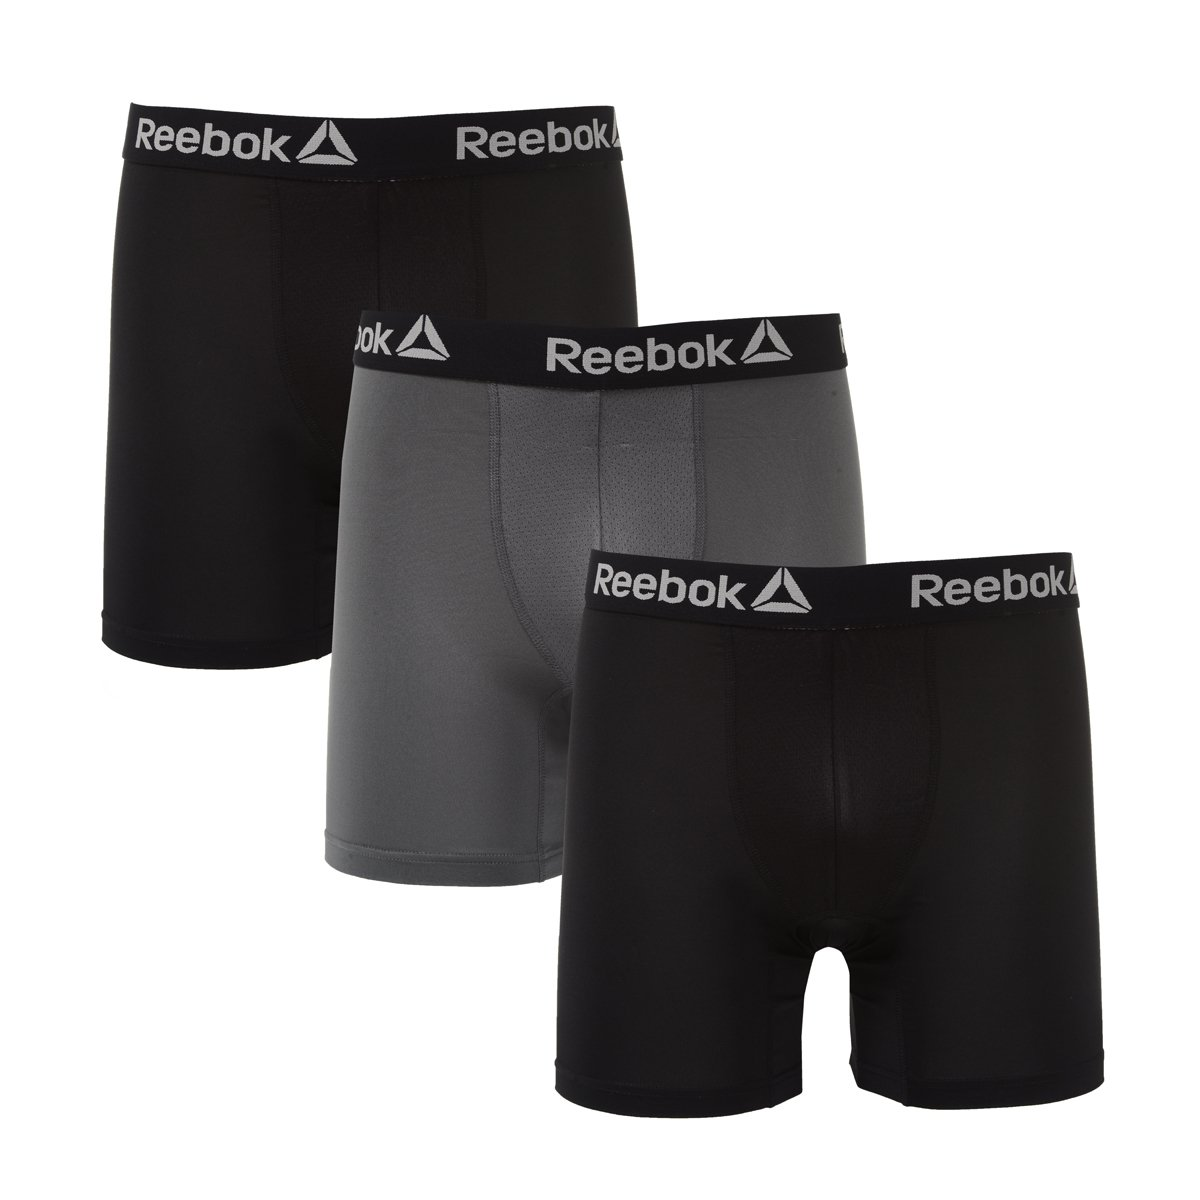 Reebok Mens 3 Pack Performance Boxer Briefs Black/Iron Gate/Black M